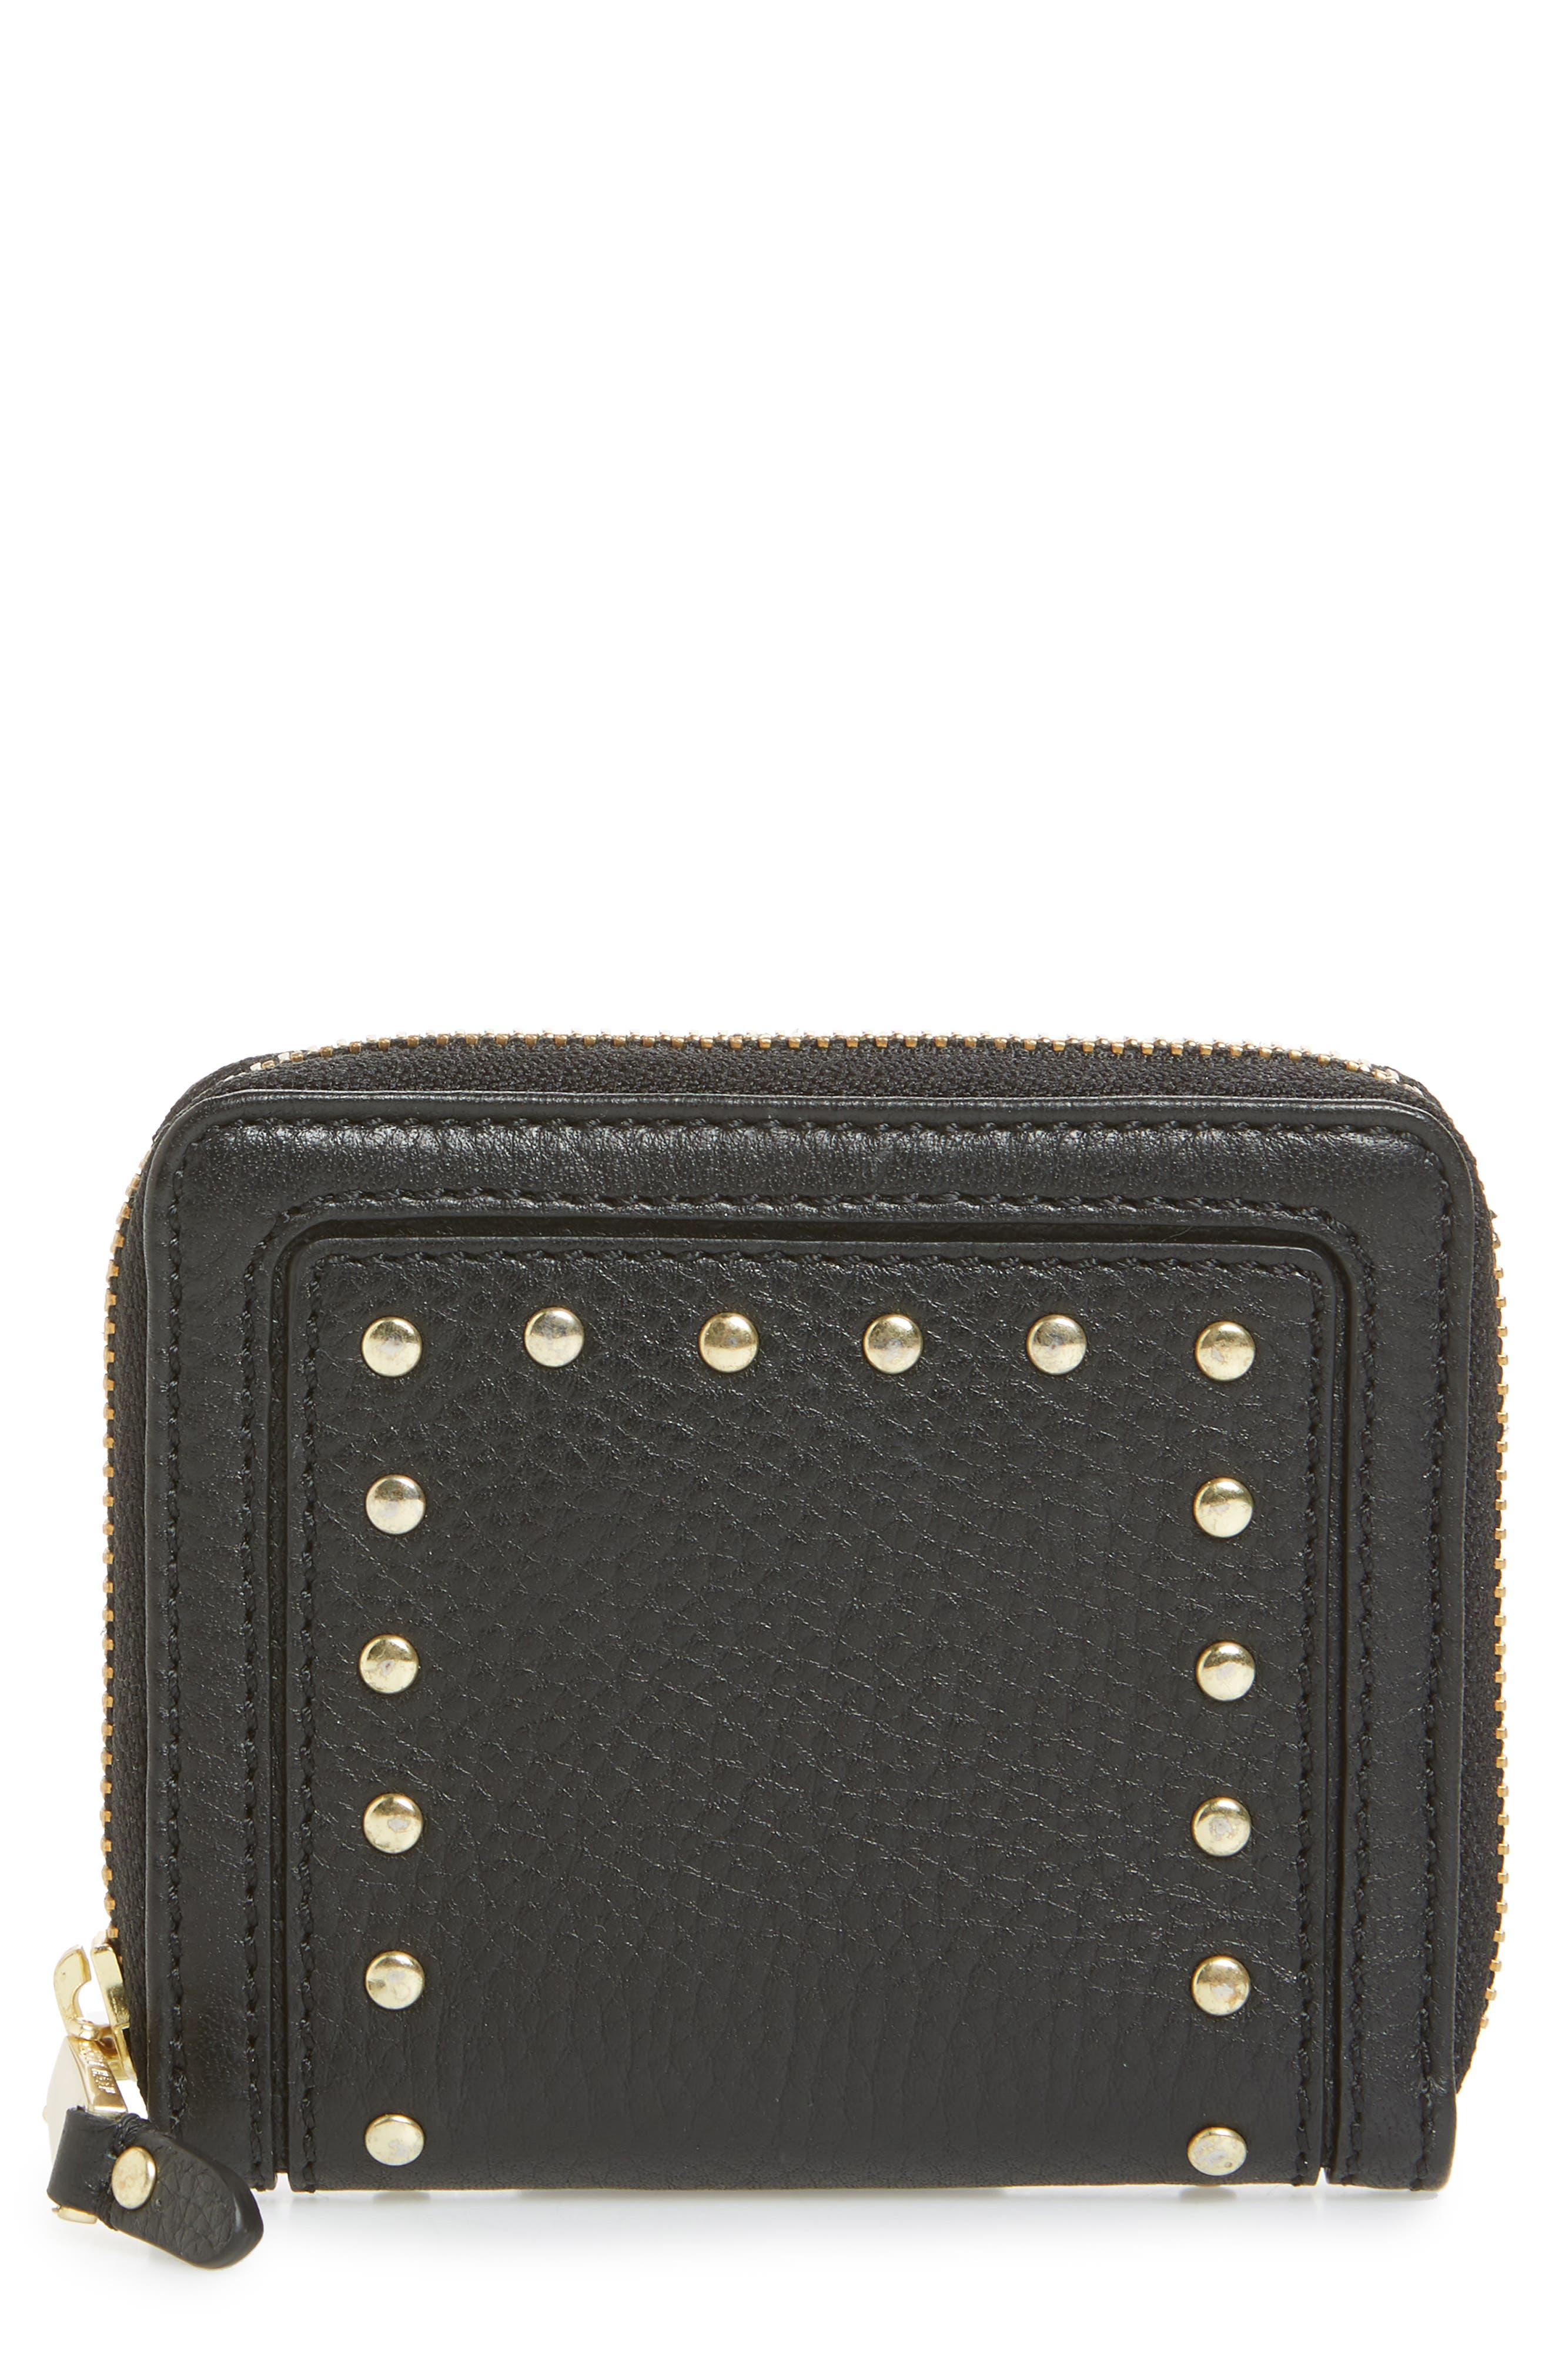 Cassidy Small RFID Leather Zip Wallet,                         Main,                         color, 001